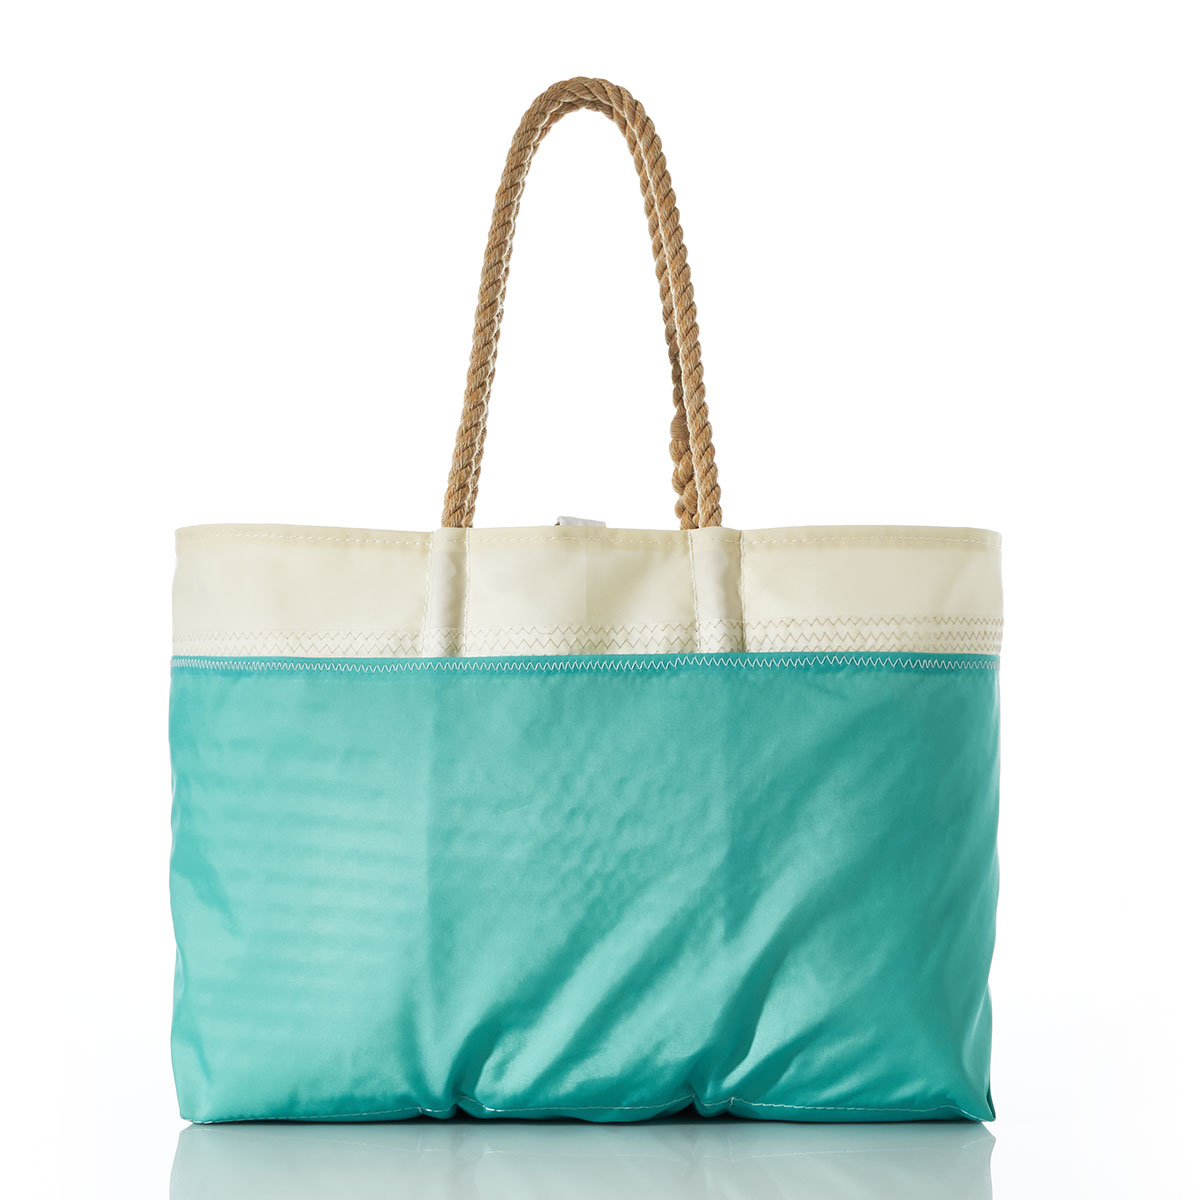 back view showing seafoam green outer pocket, stripes of shades of blues are printed on this recycled sail cloth tote, with a seafoam green bottom and hemp rope handles